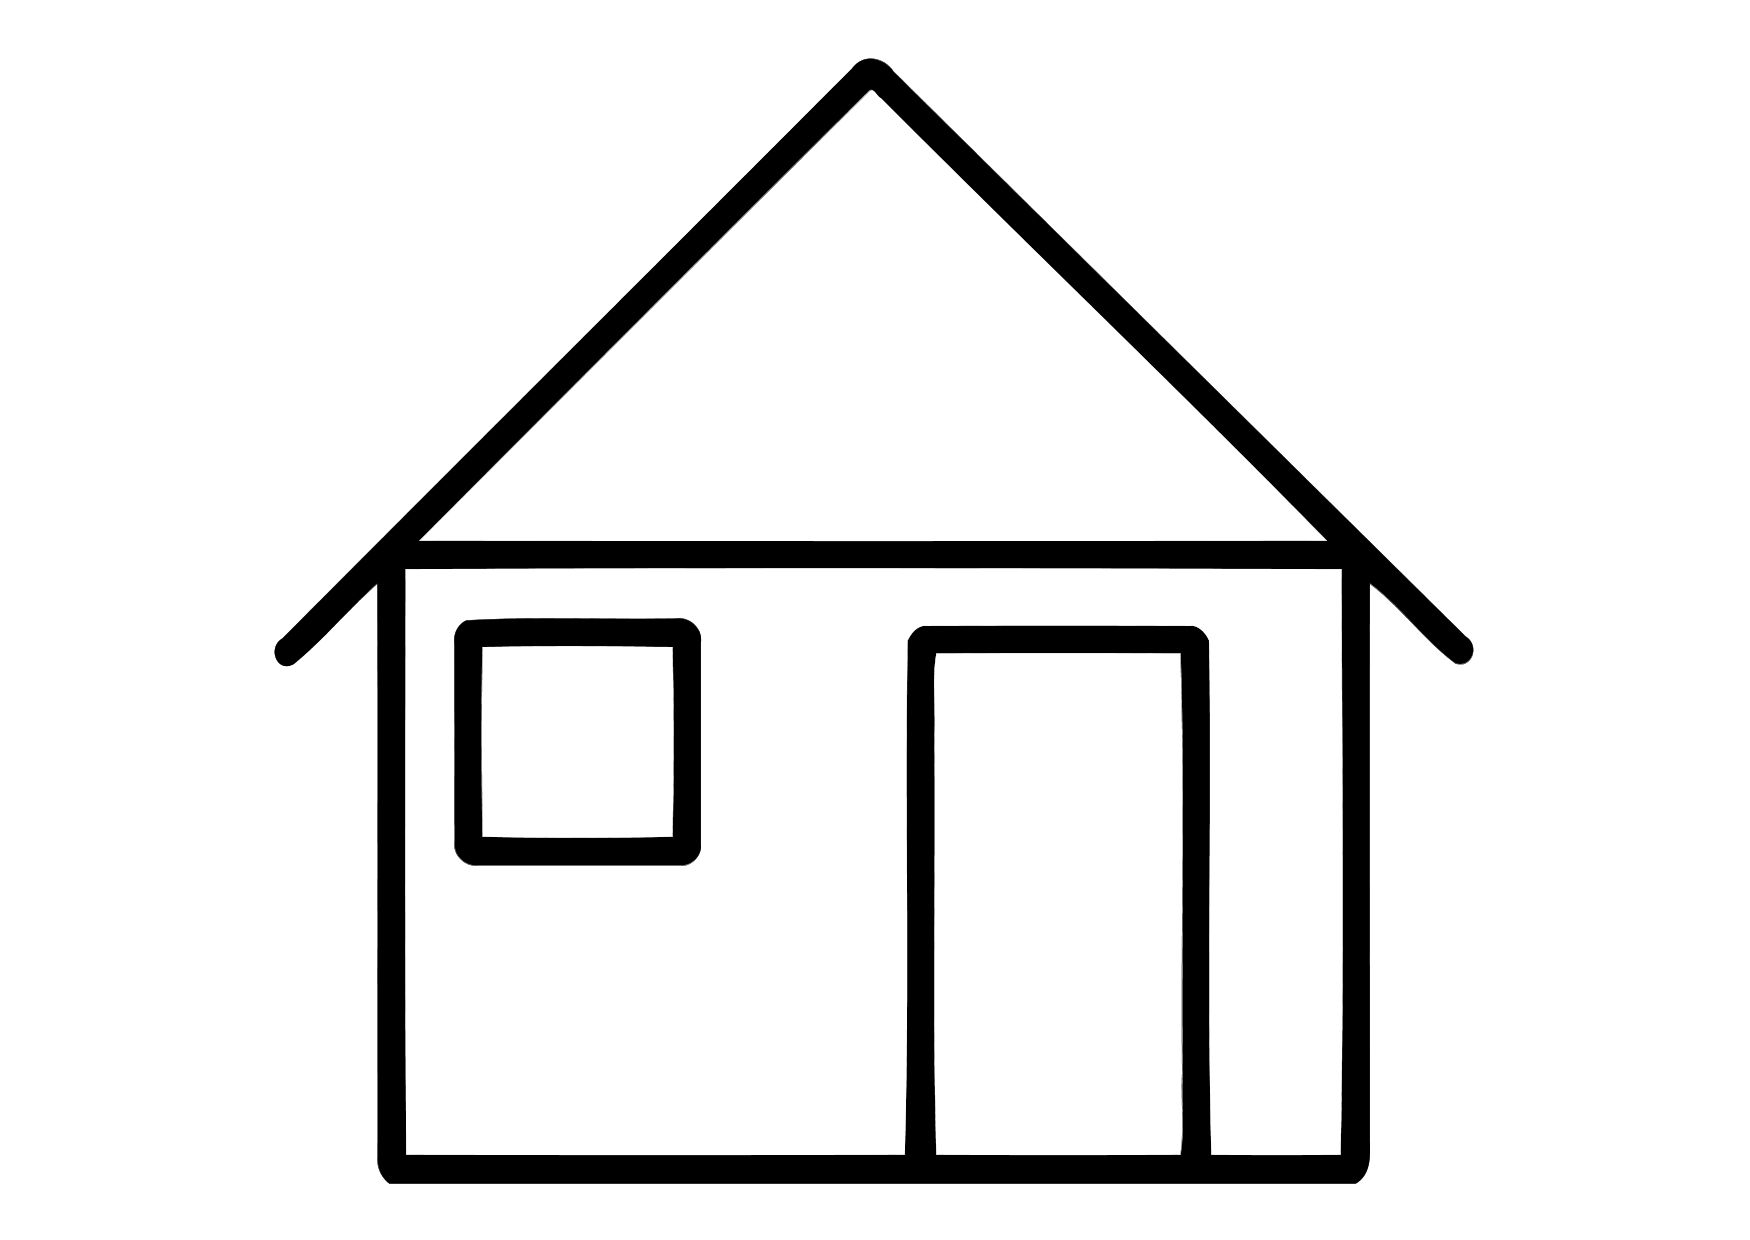 House coloring pages to download